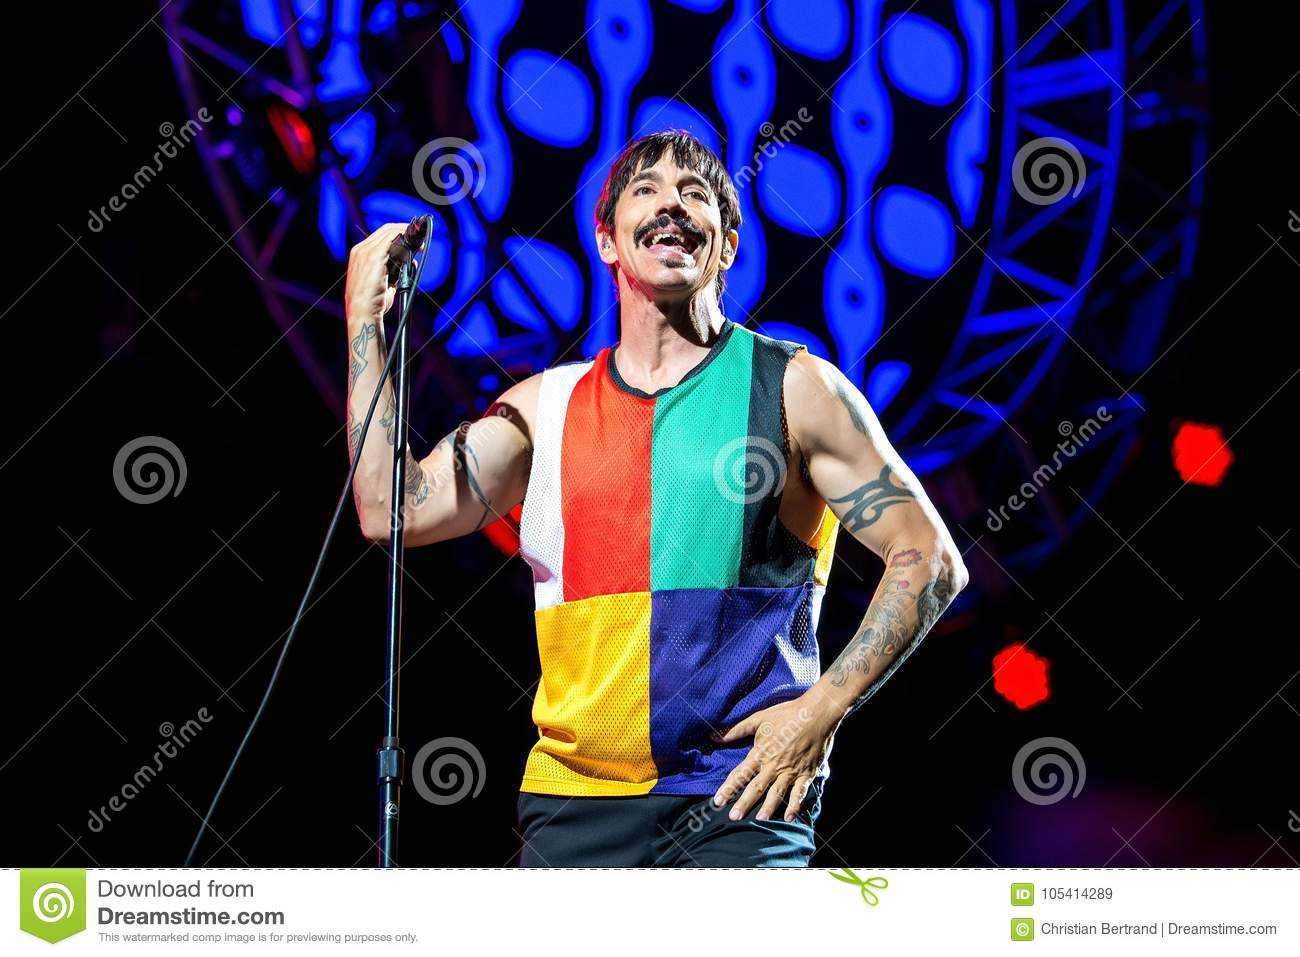 Anthony Kiedis, frontman of Red Hot Chili Peppers music band, performs in concert at FIB Festival